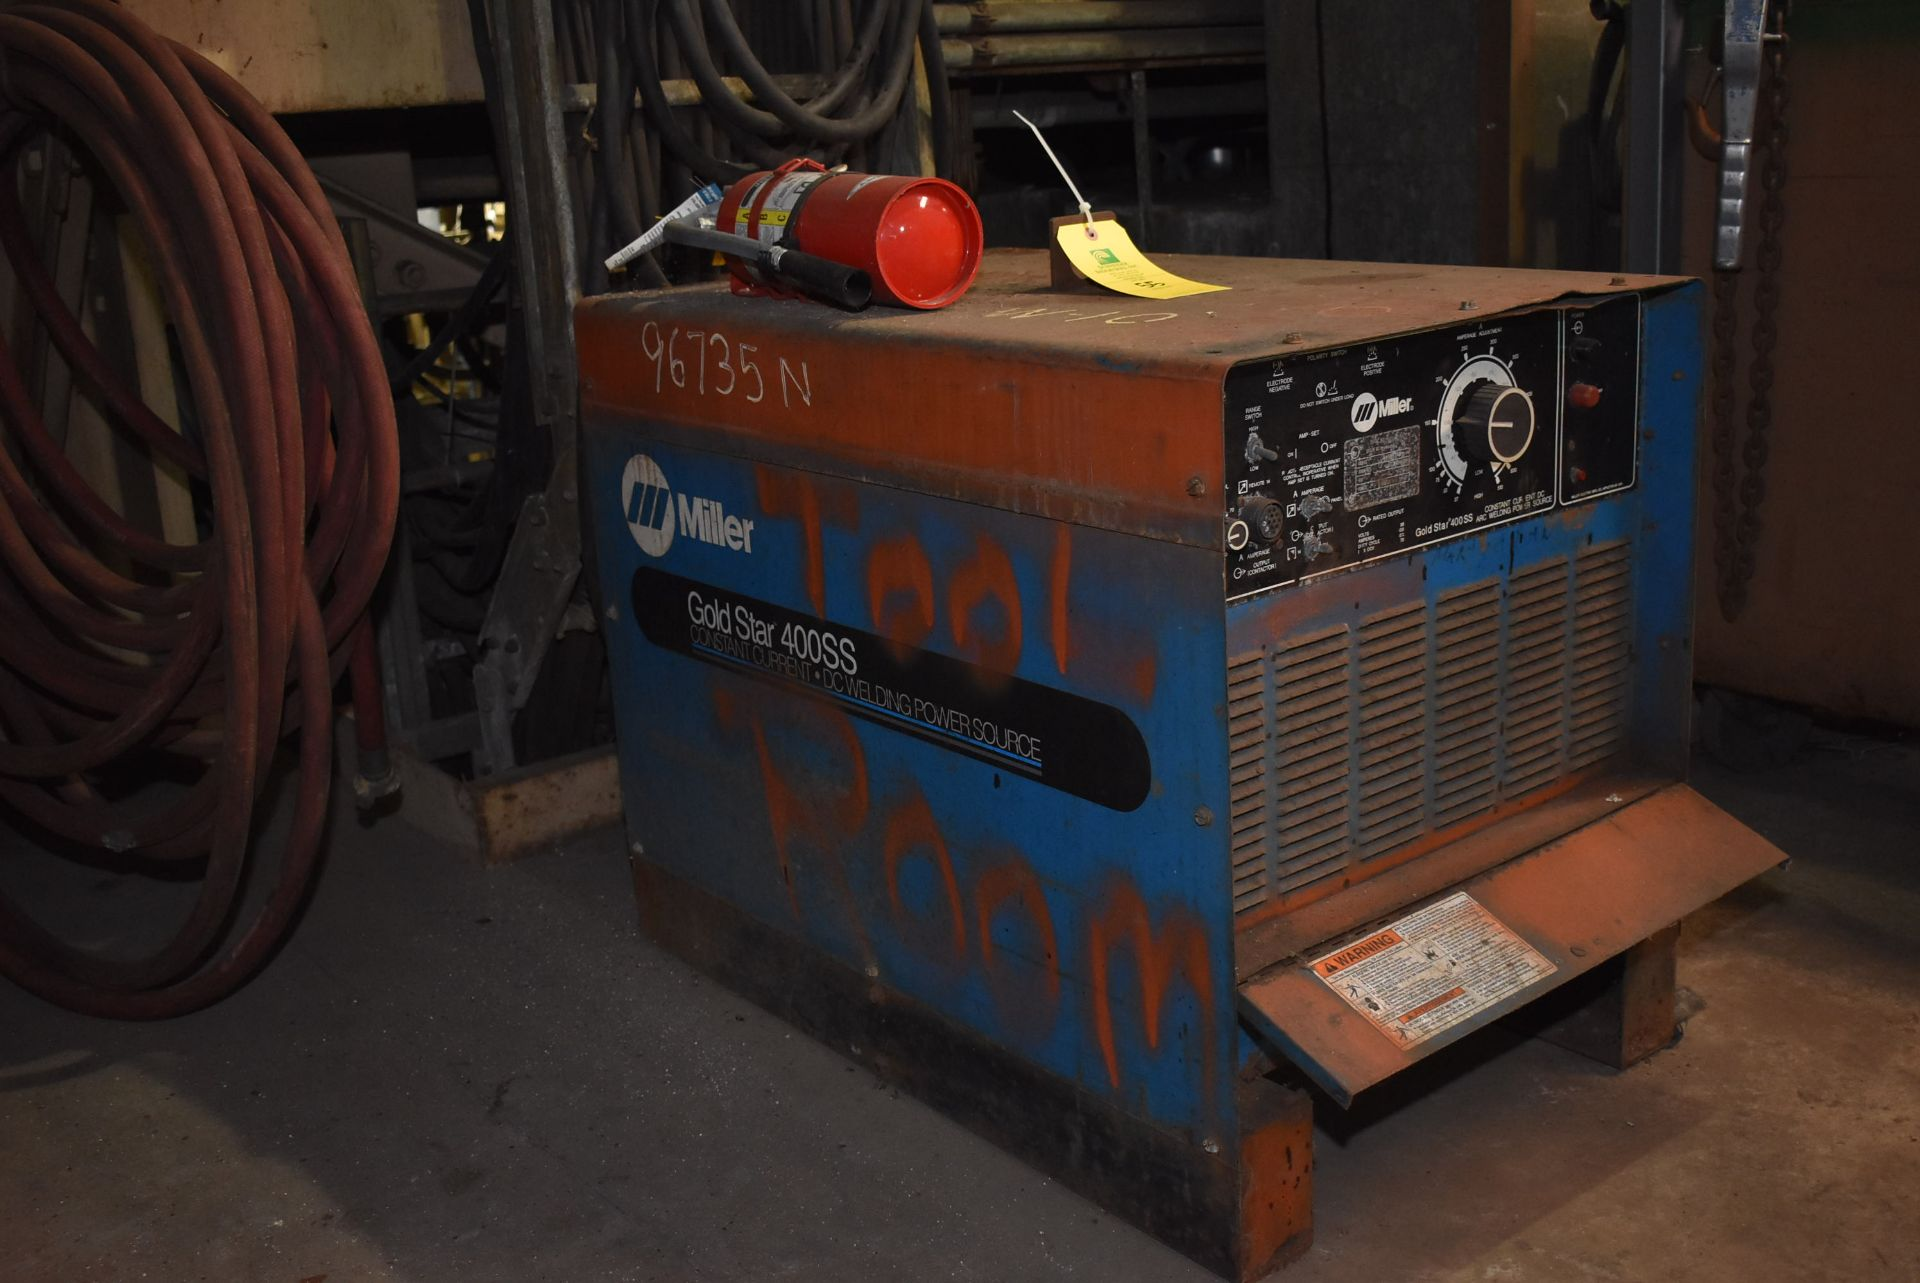 Lot 55 - Miller Gold Star 400 SS Welder, Stock #207692